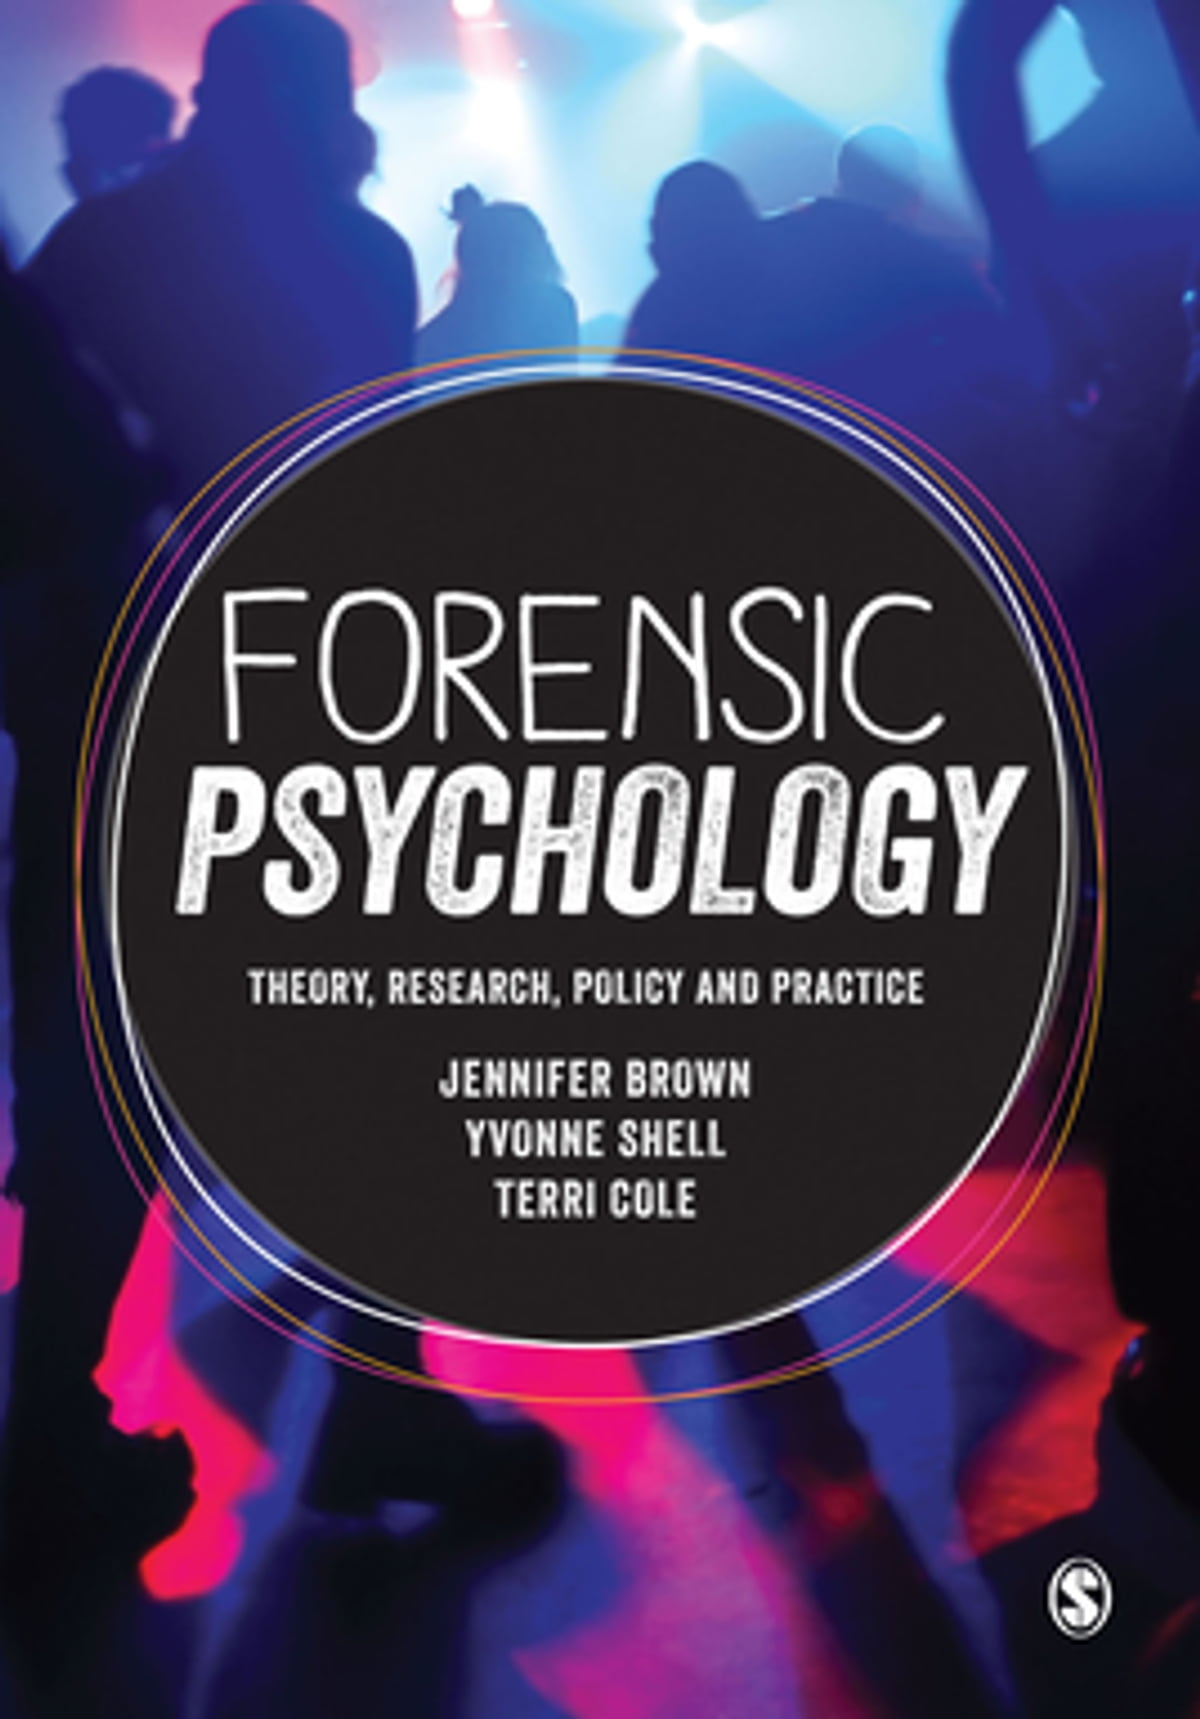 Forensic Psychology Ebook By Jennifer Brown 9781473933989 Rakuten Kobo United States